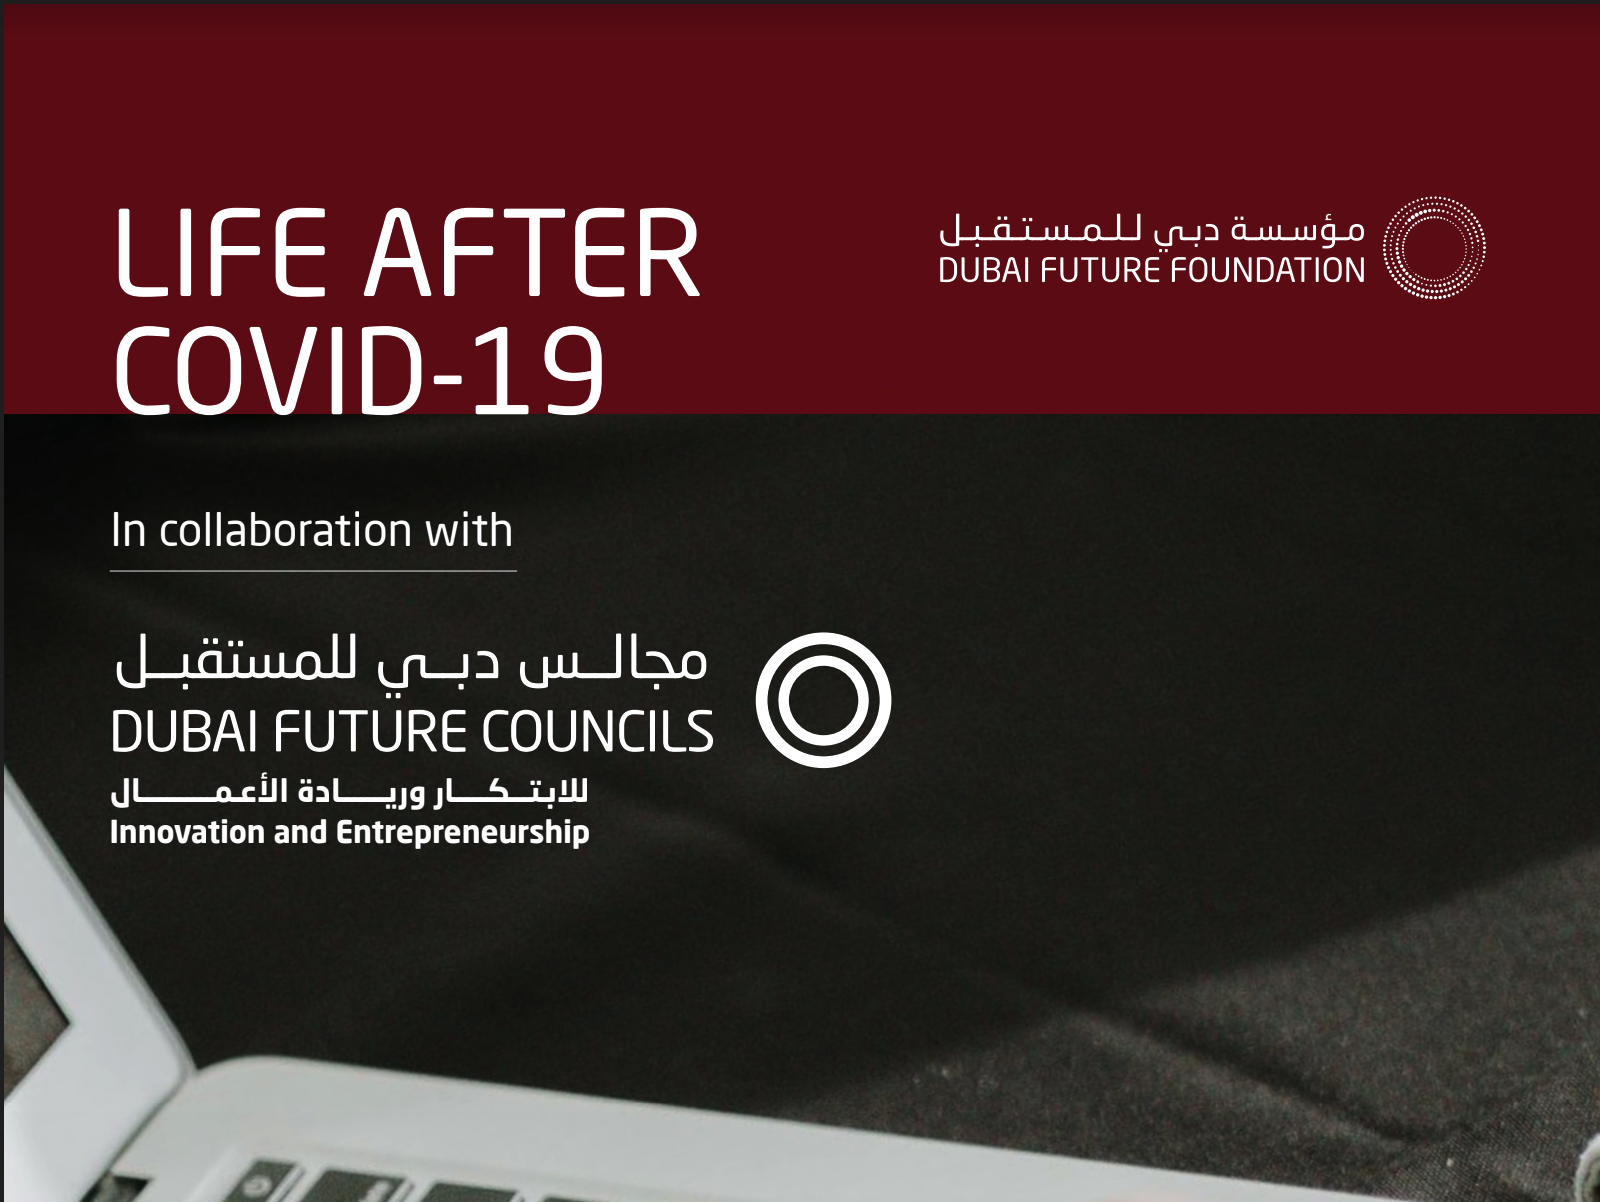 Dubai Future Foundation issues its 5th report on life after COVID-19